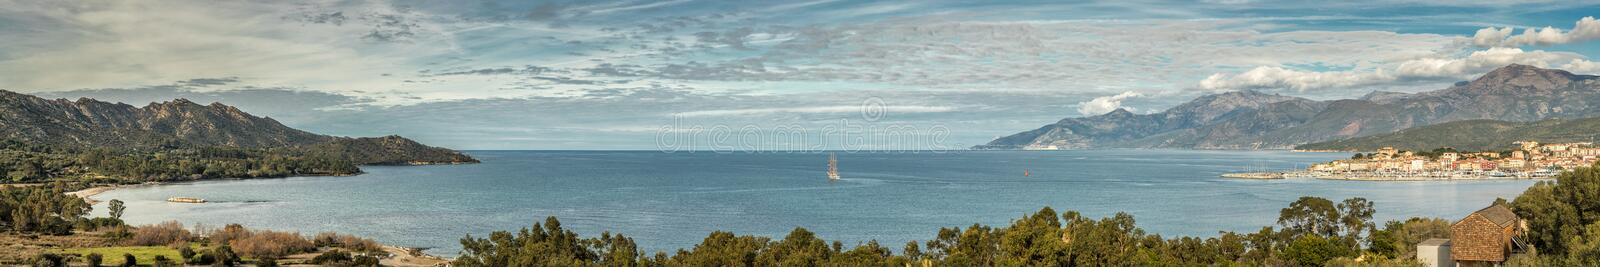 Panoramic view of St Florent bay in Corsica stock images